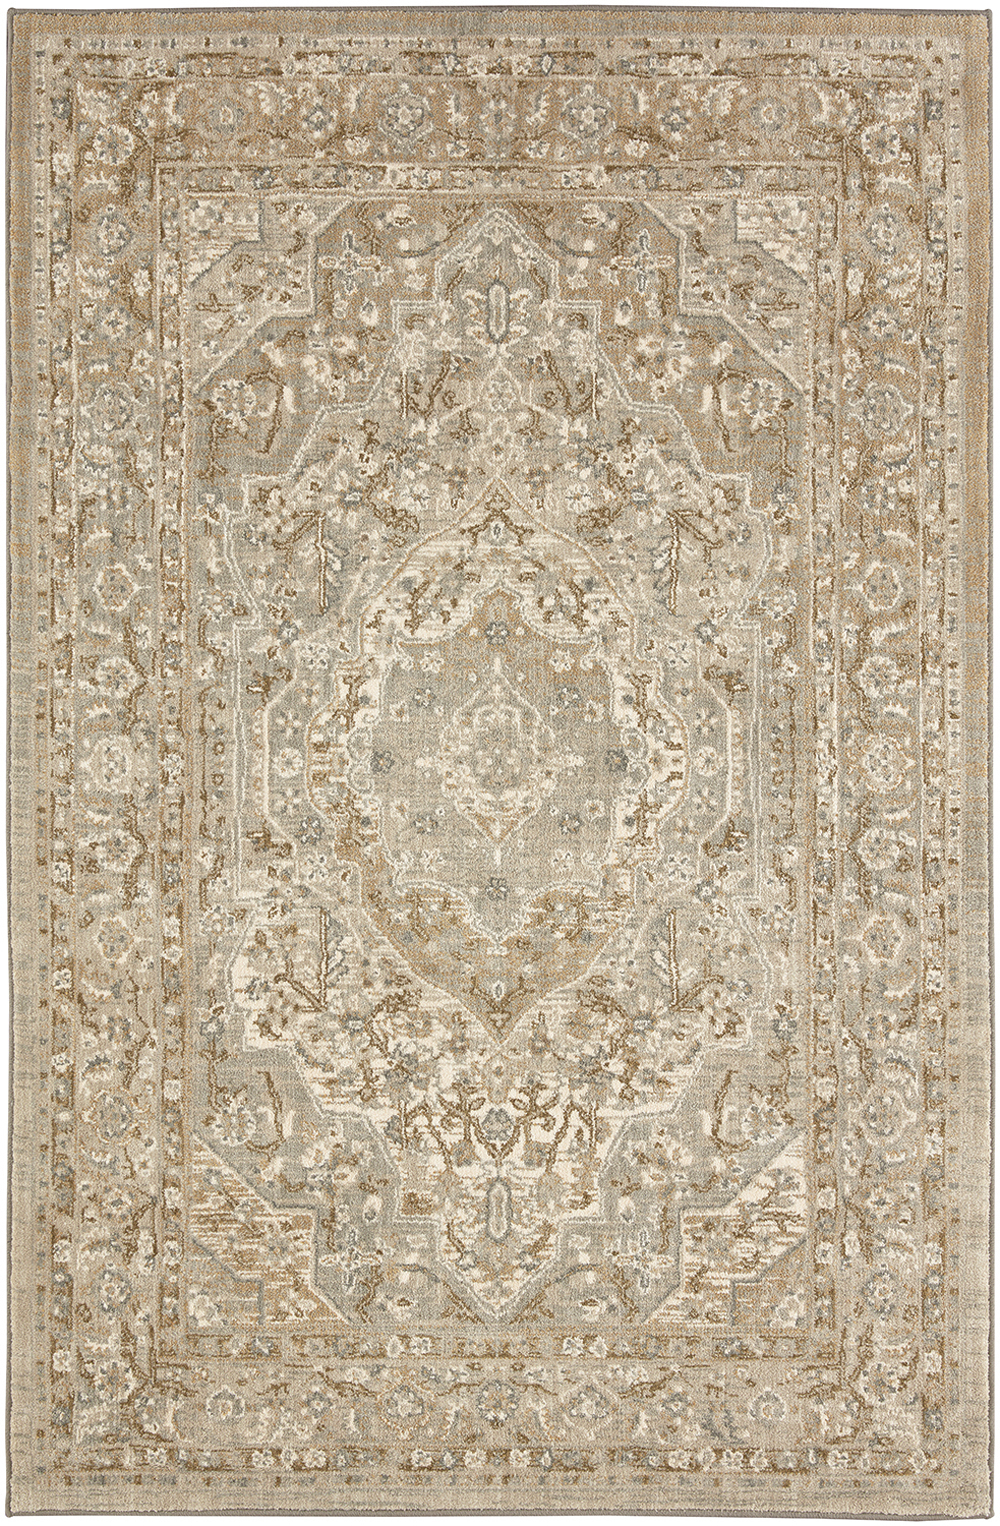 Karastan Touchstone Nore Willow Grey Bone White Rug